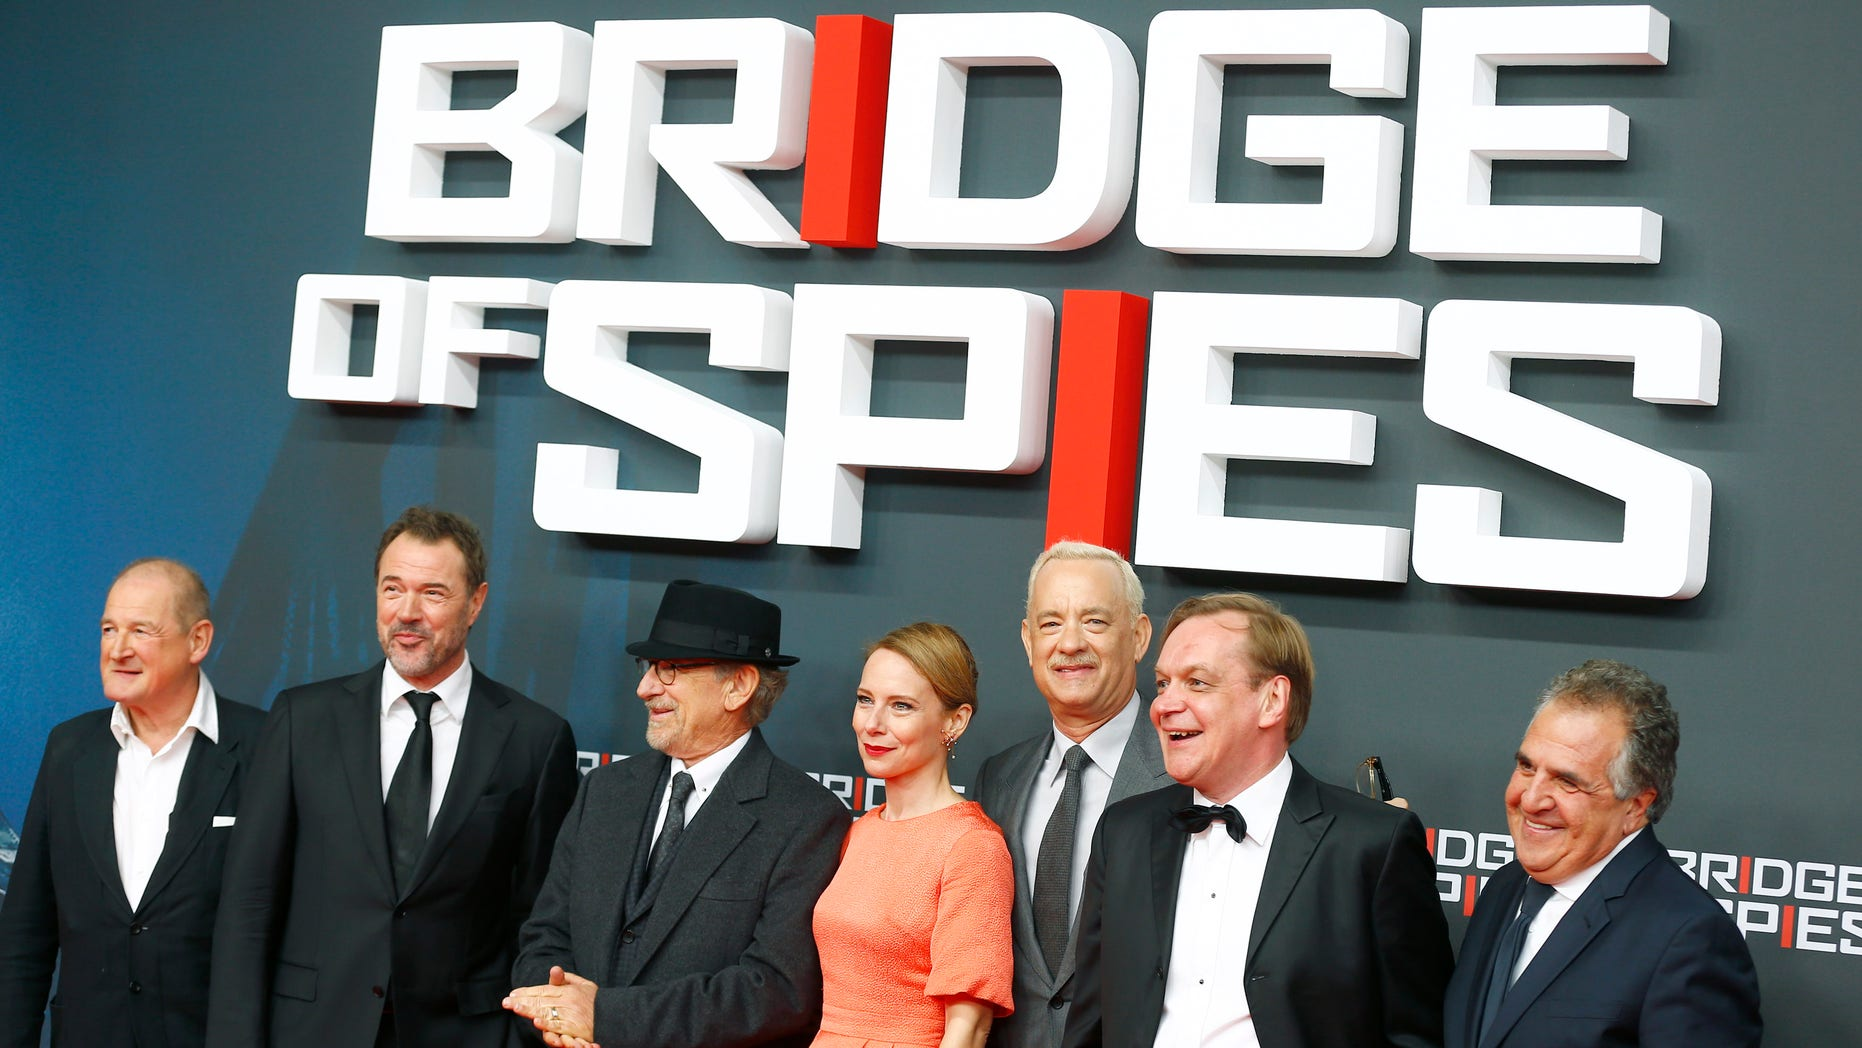 "November 13, 2015. Film director Stephen Spielberg, actors Tom Hanks (3rd R) Amy Ryan (4th R) Sebastian Koch (2nd L) and cast members arrive for the premiere of the film ""Bridge of Spies"" in Berlin, Germany."